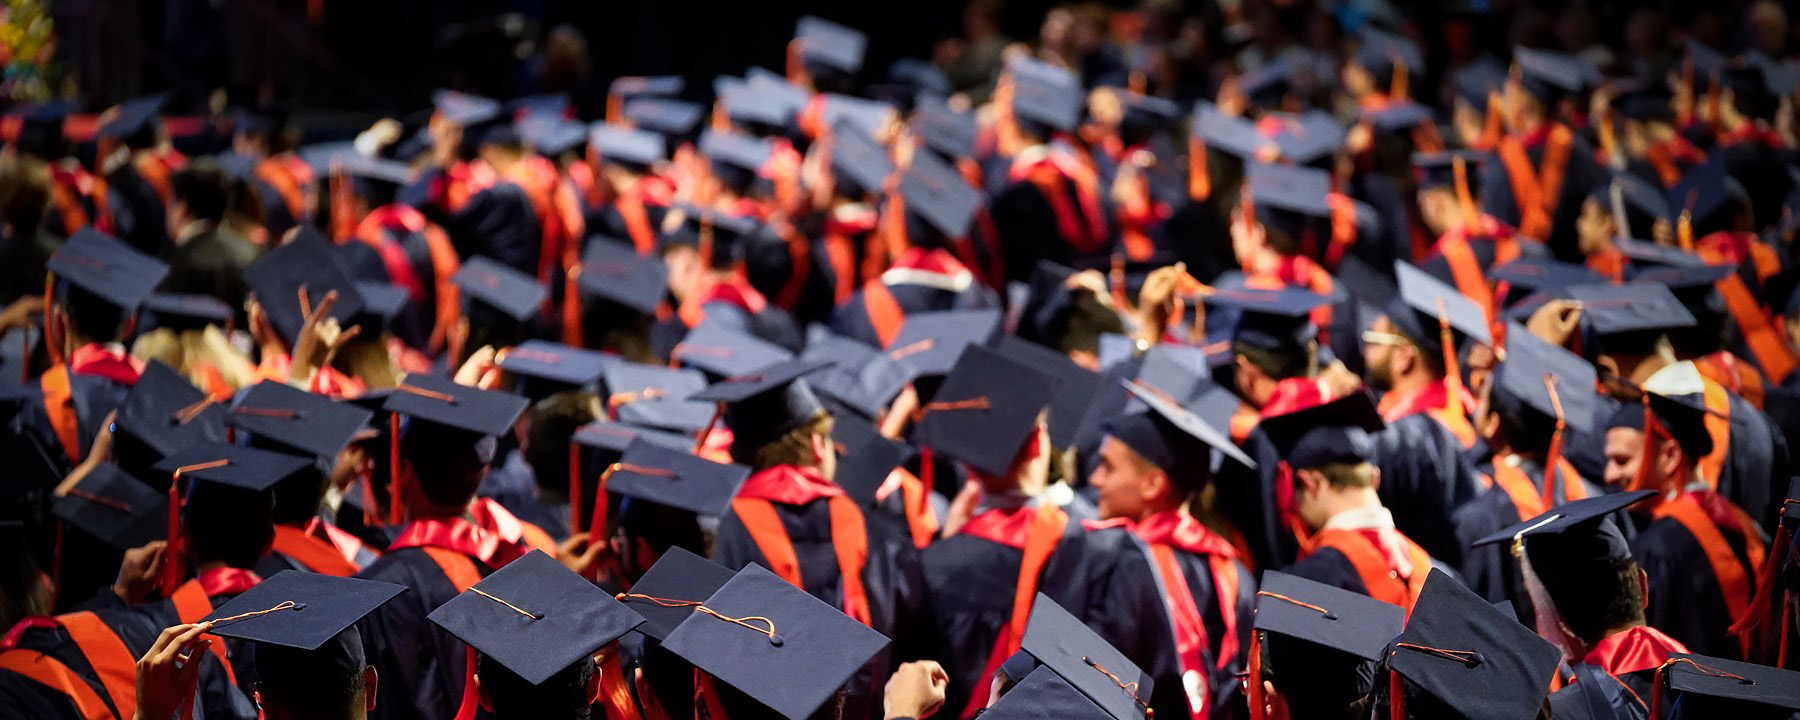 Pack of UIC graduates in caps and gowns